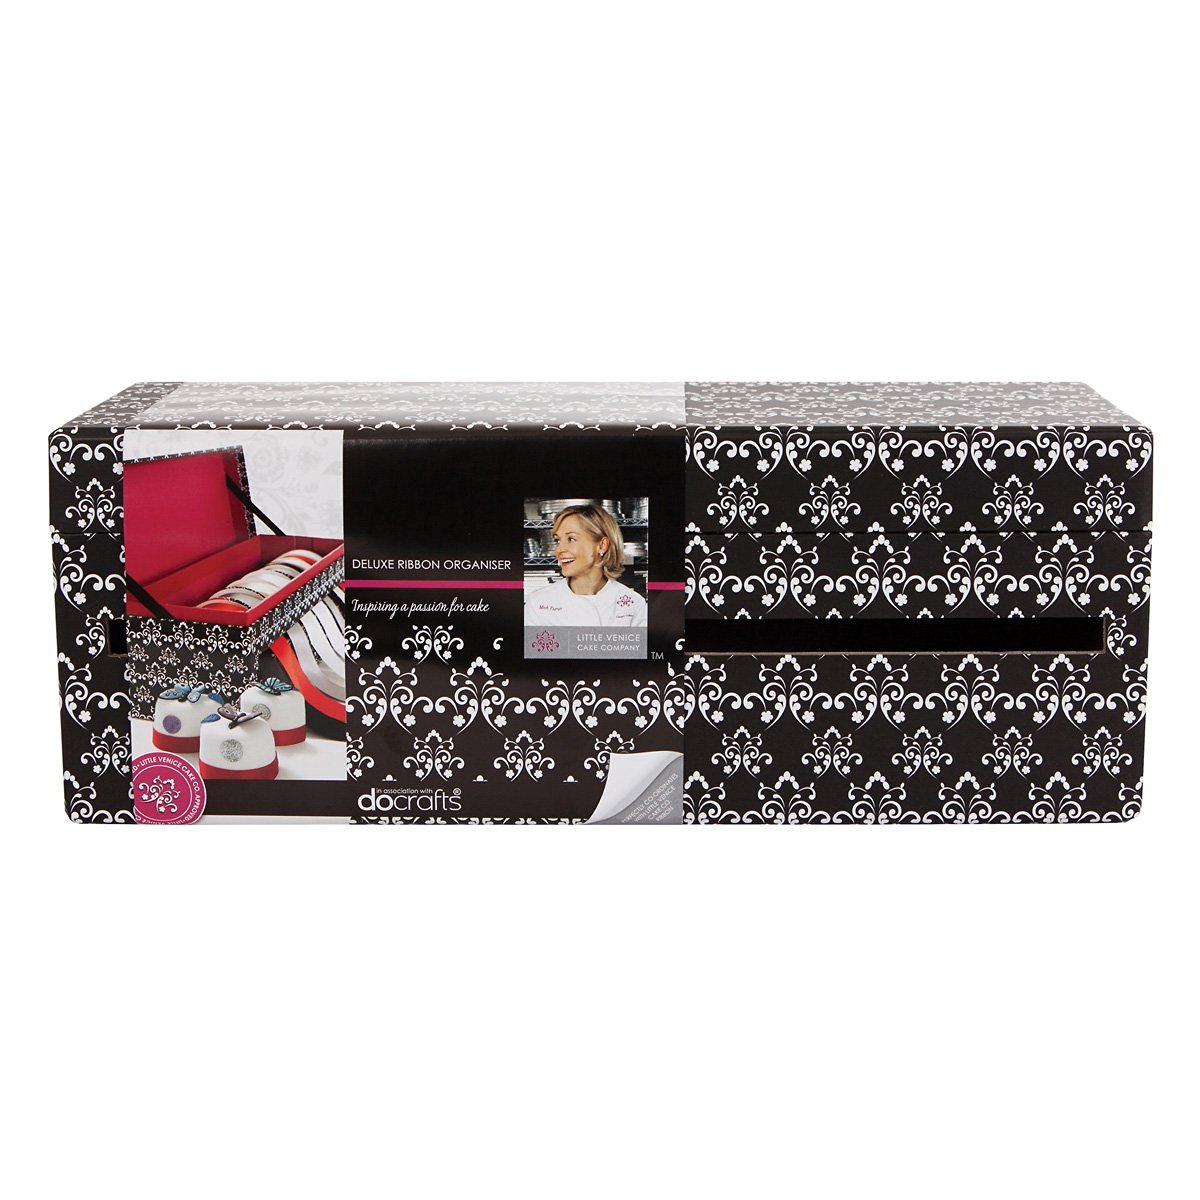 Little Venice Cake Deluxe Ribbon Organizer, 4.5 by 12.5 by 4.25-Inch